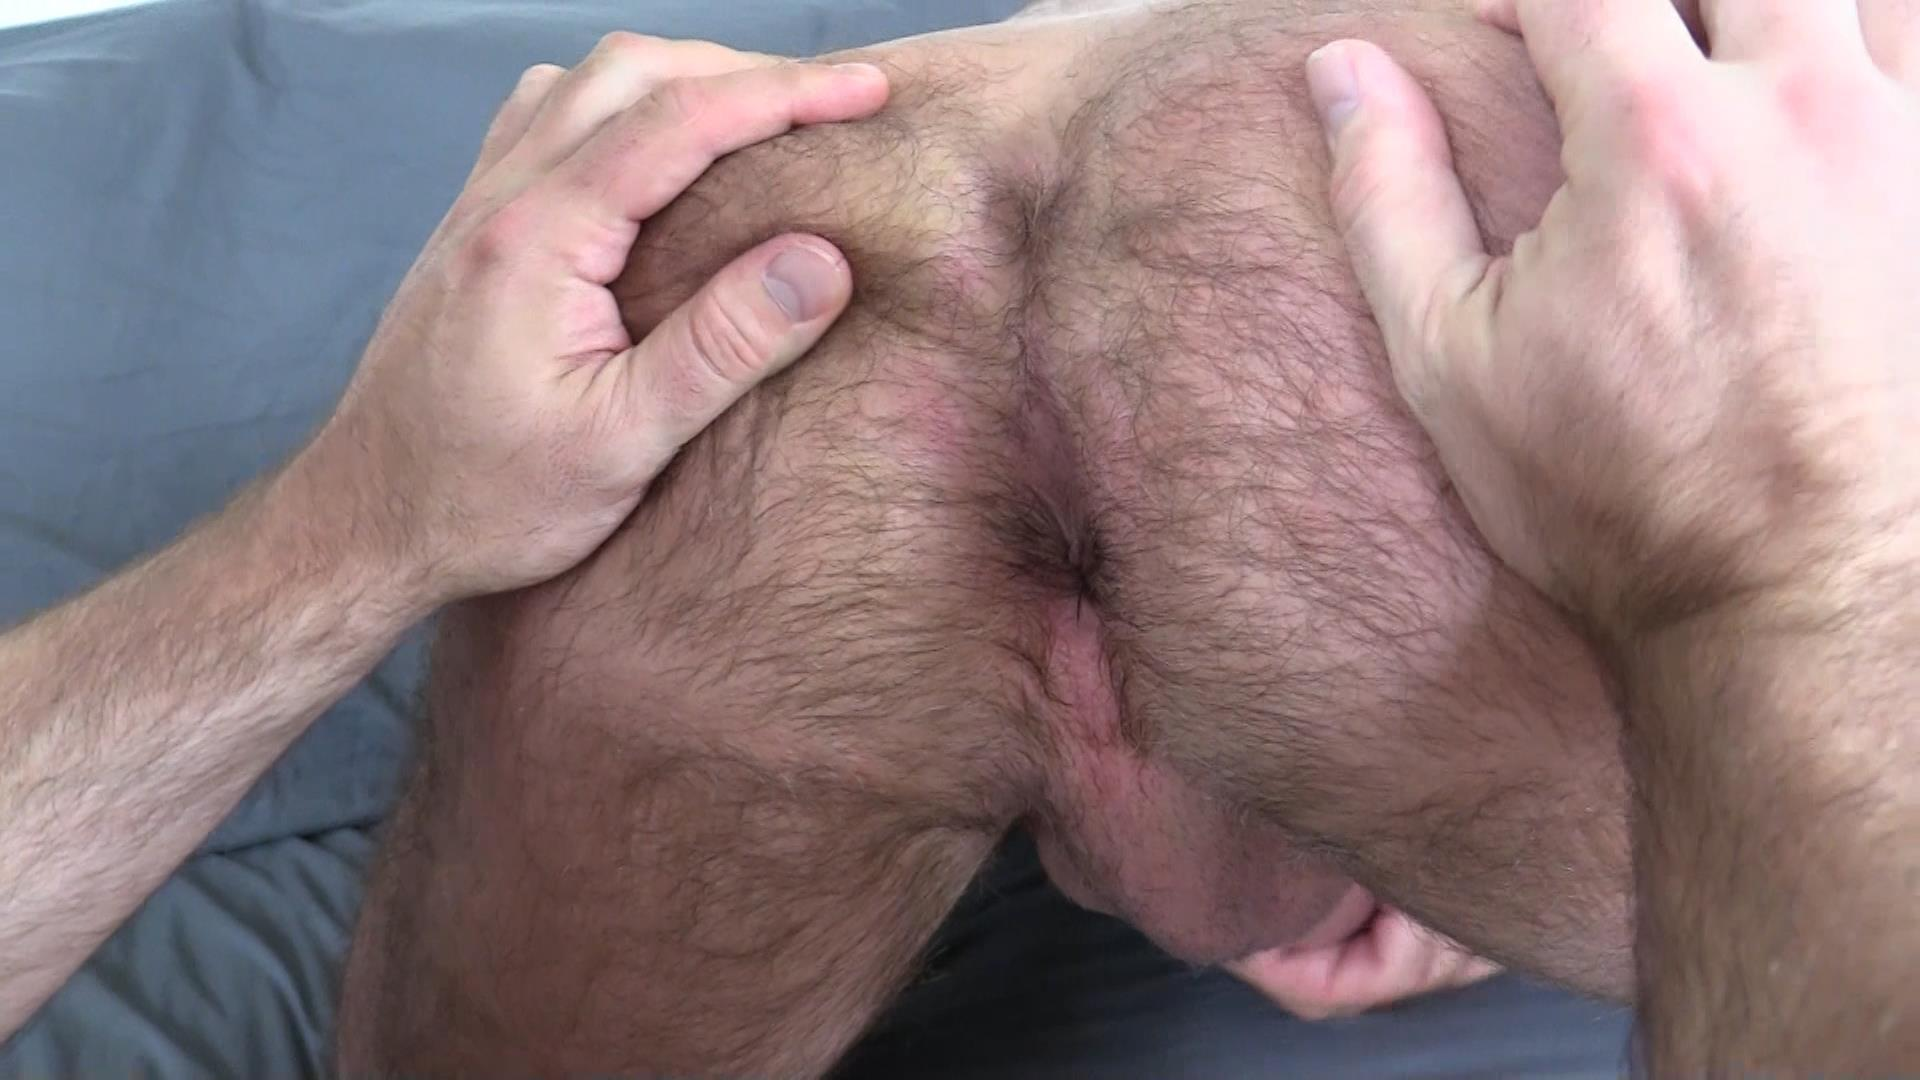 Topher-Phoenix-and-Dale-Savage-Hairy-Daddy-Bears-Gay-bareback-sex-video-07 Topher Phoenix Breeds Hairy Muscle Daddy Dale Savage